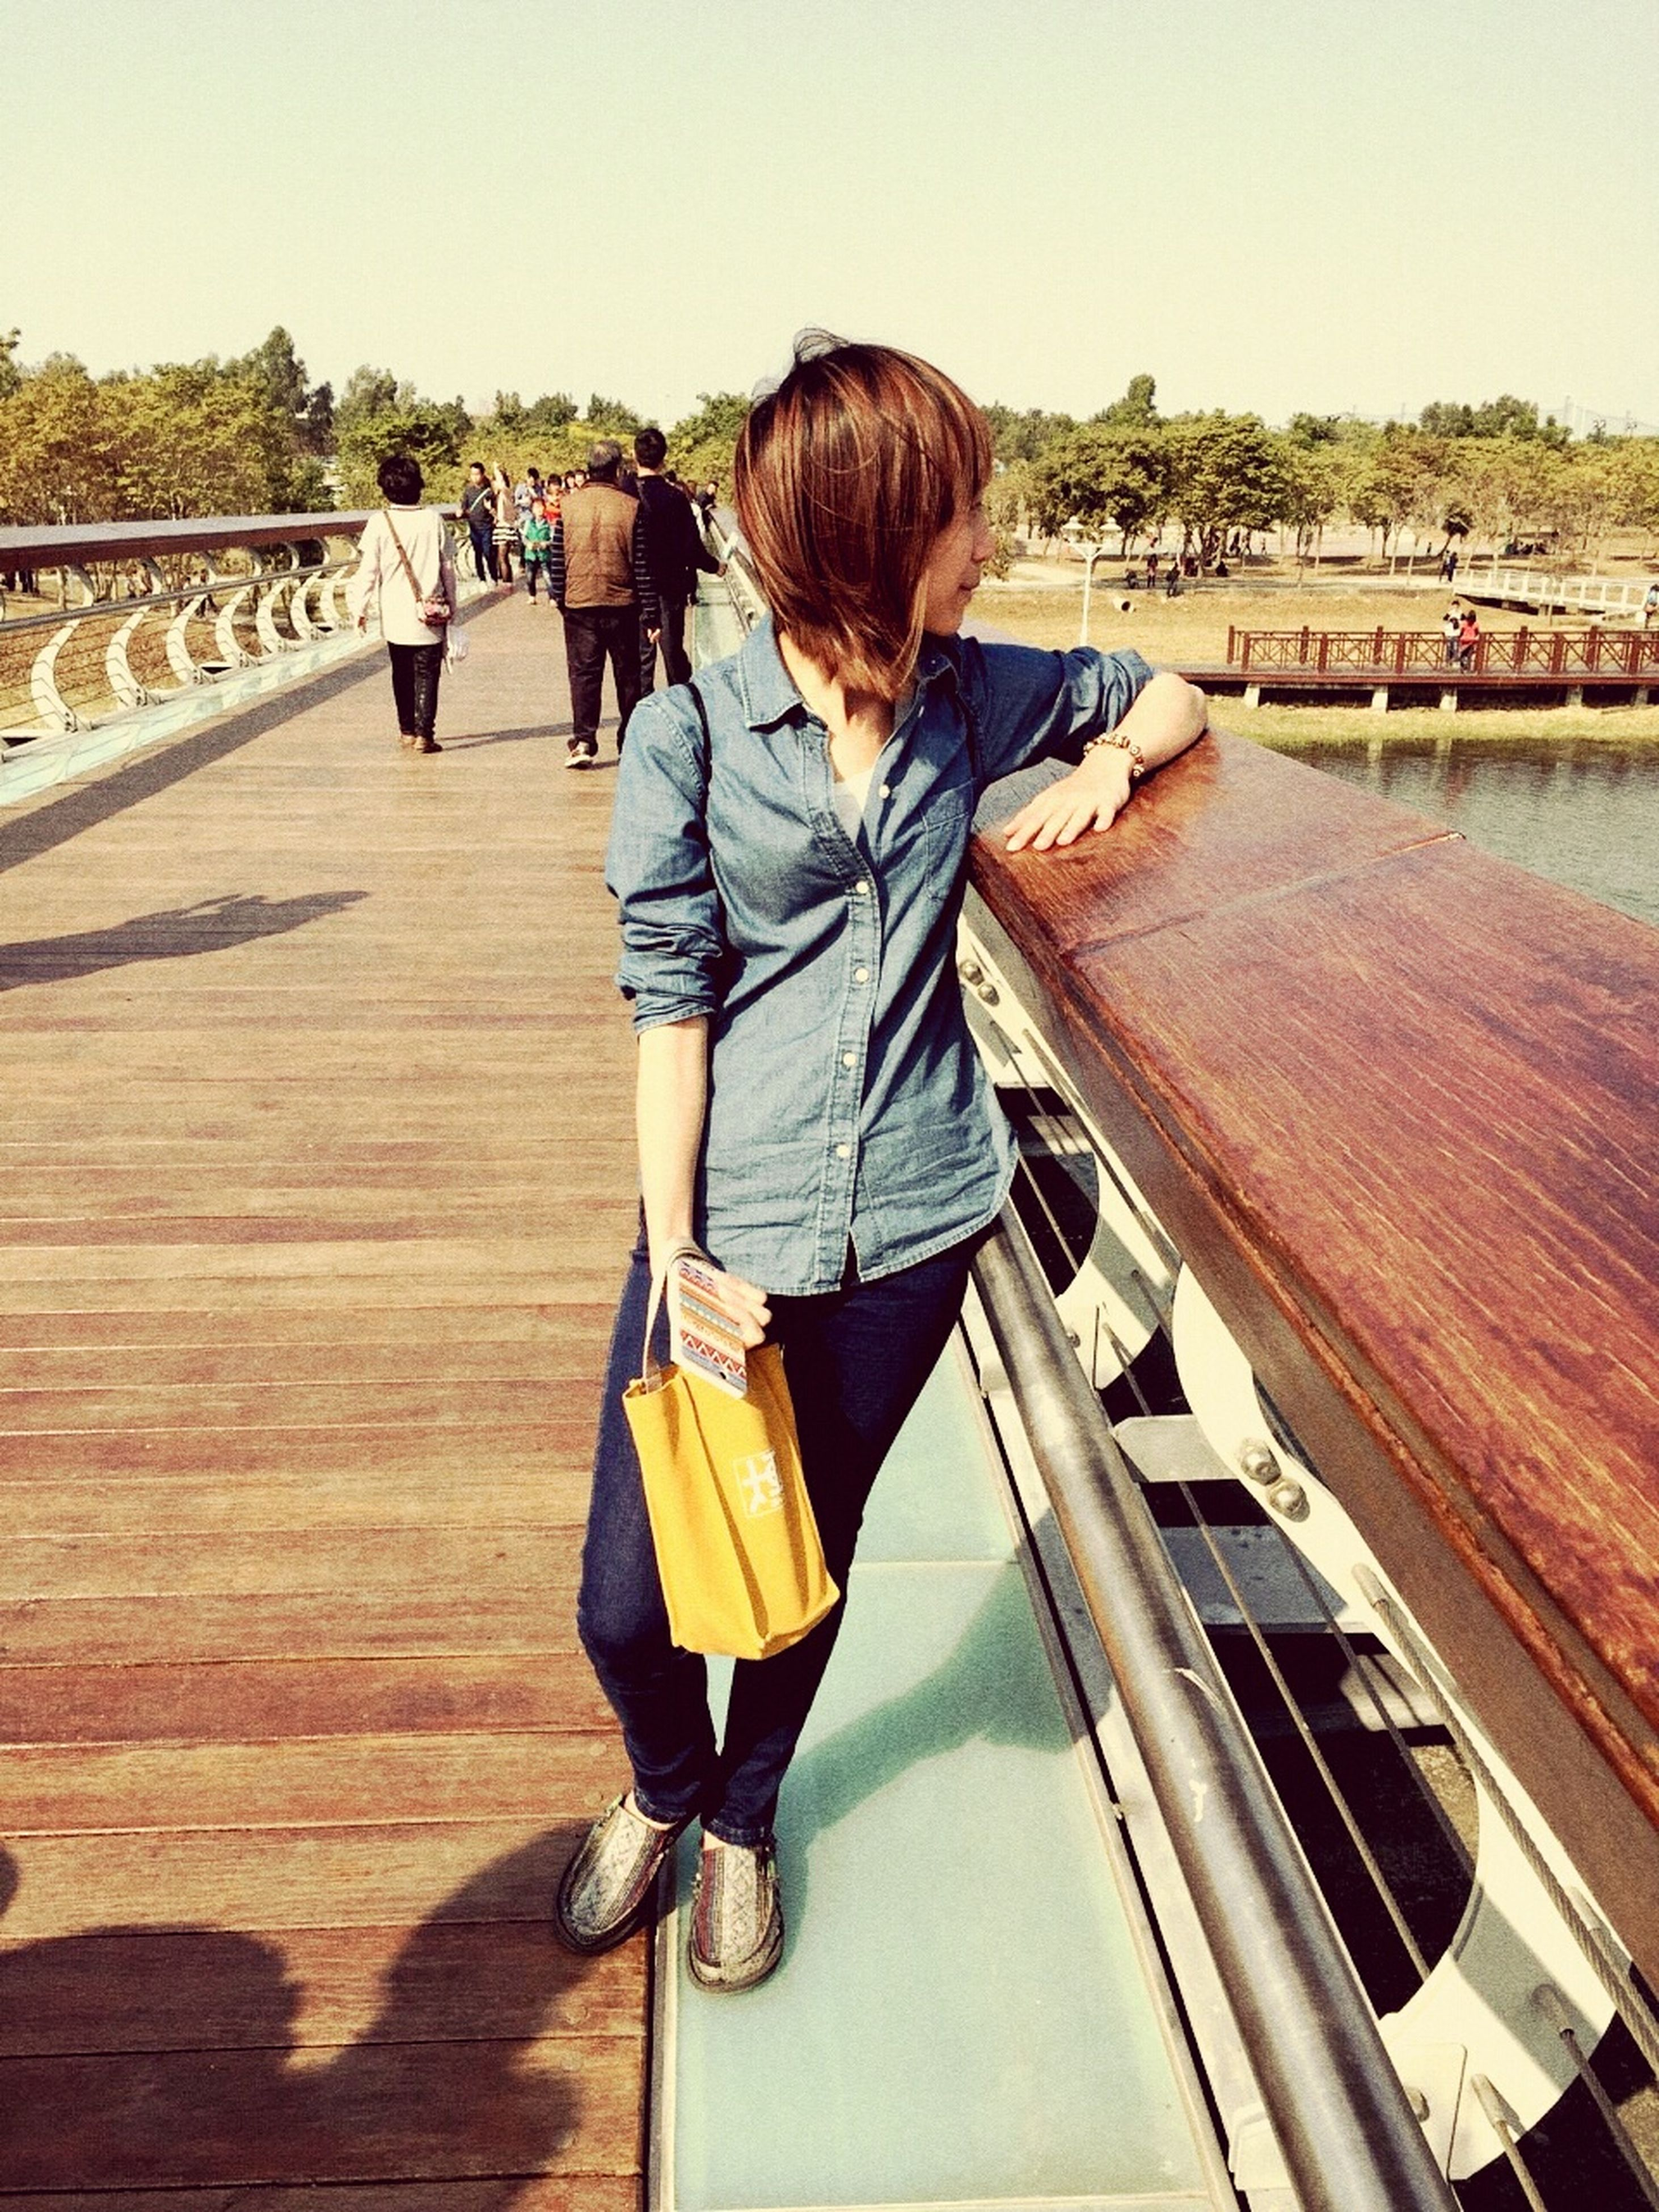 rear view, full length, lifestyles, railing, leisure activity, walking, transportation, the way forward, men, person, casual clothing, bridge - man made structure, connection, water, footbridge, built structure, standing